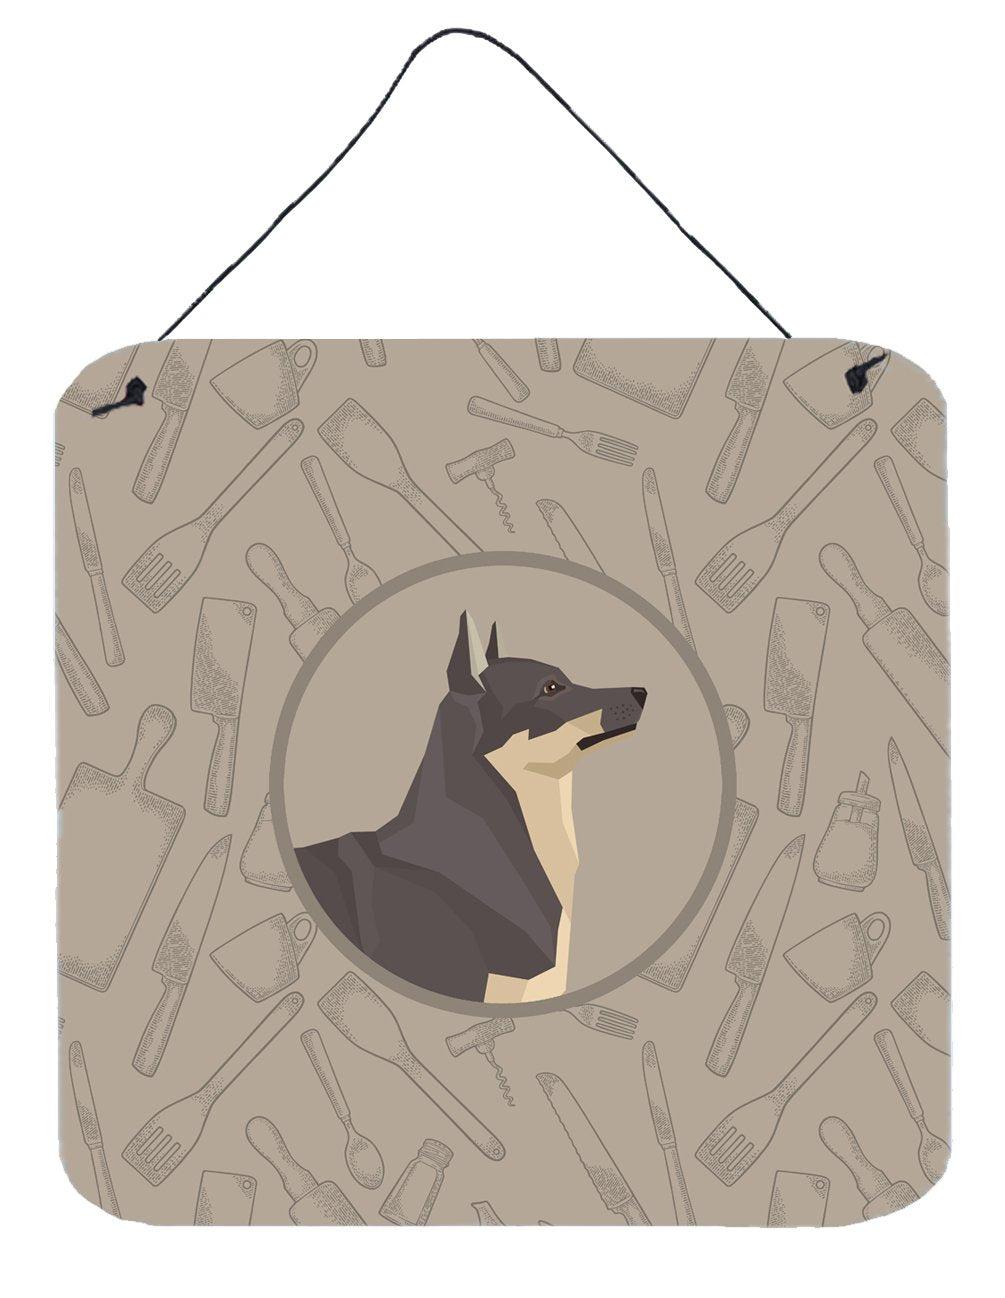 Swedish Vallhund In the Kitchen Wall or Door Hanging Prints CK2213DS66 by Caroline's Treasures